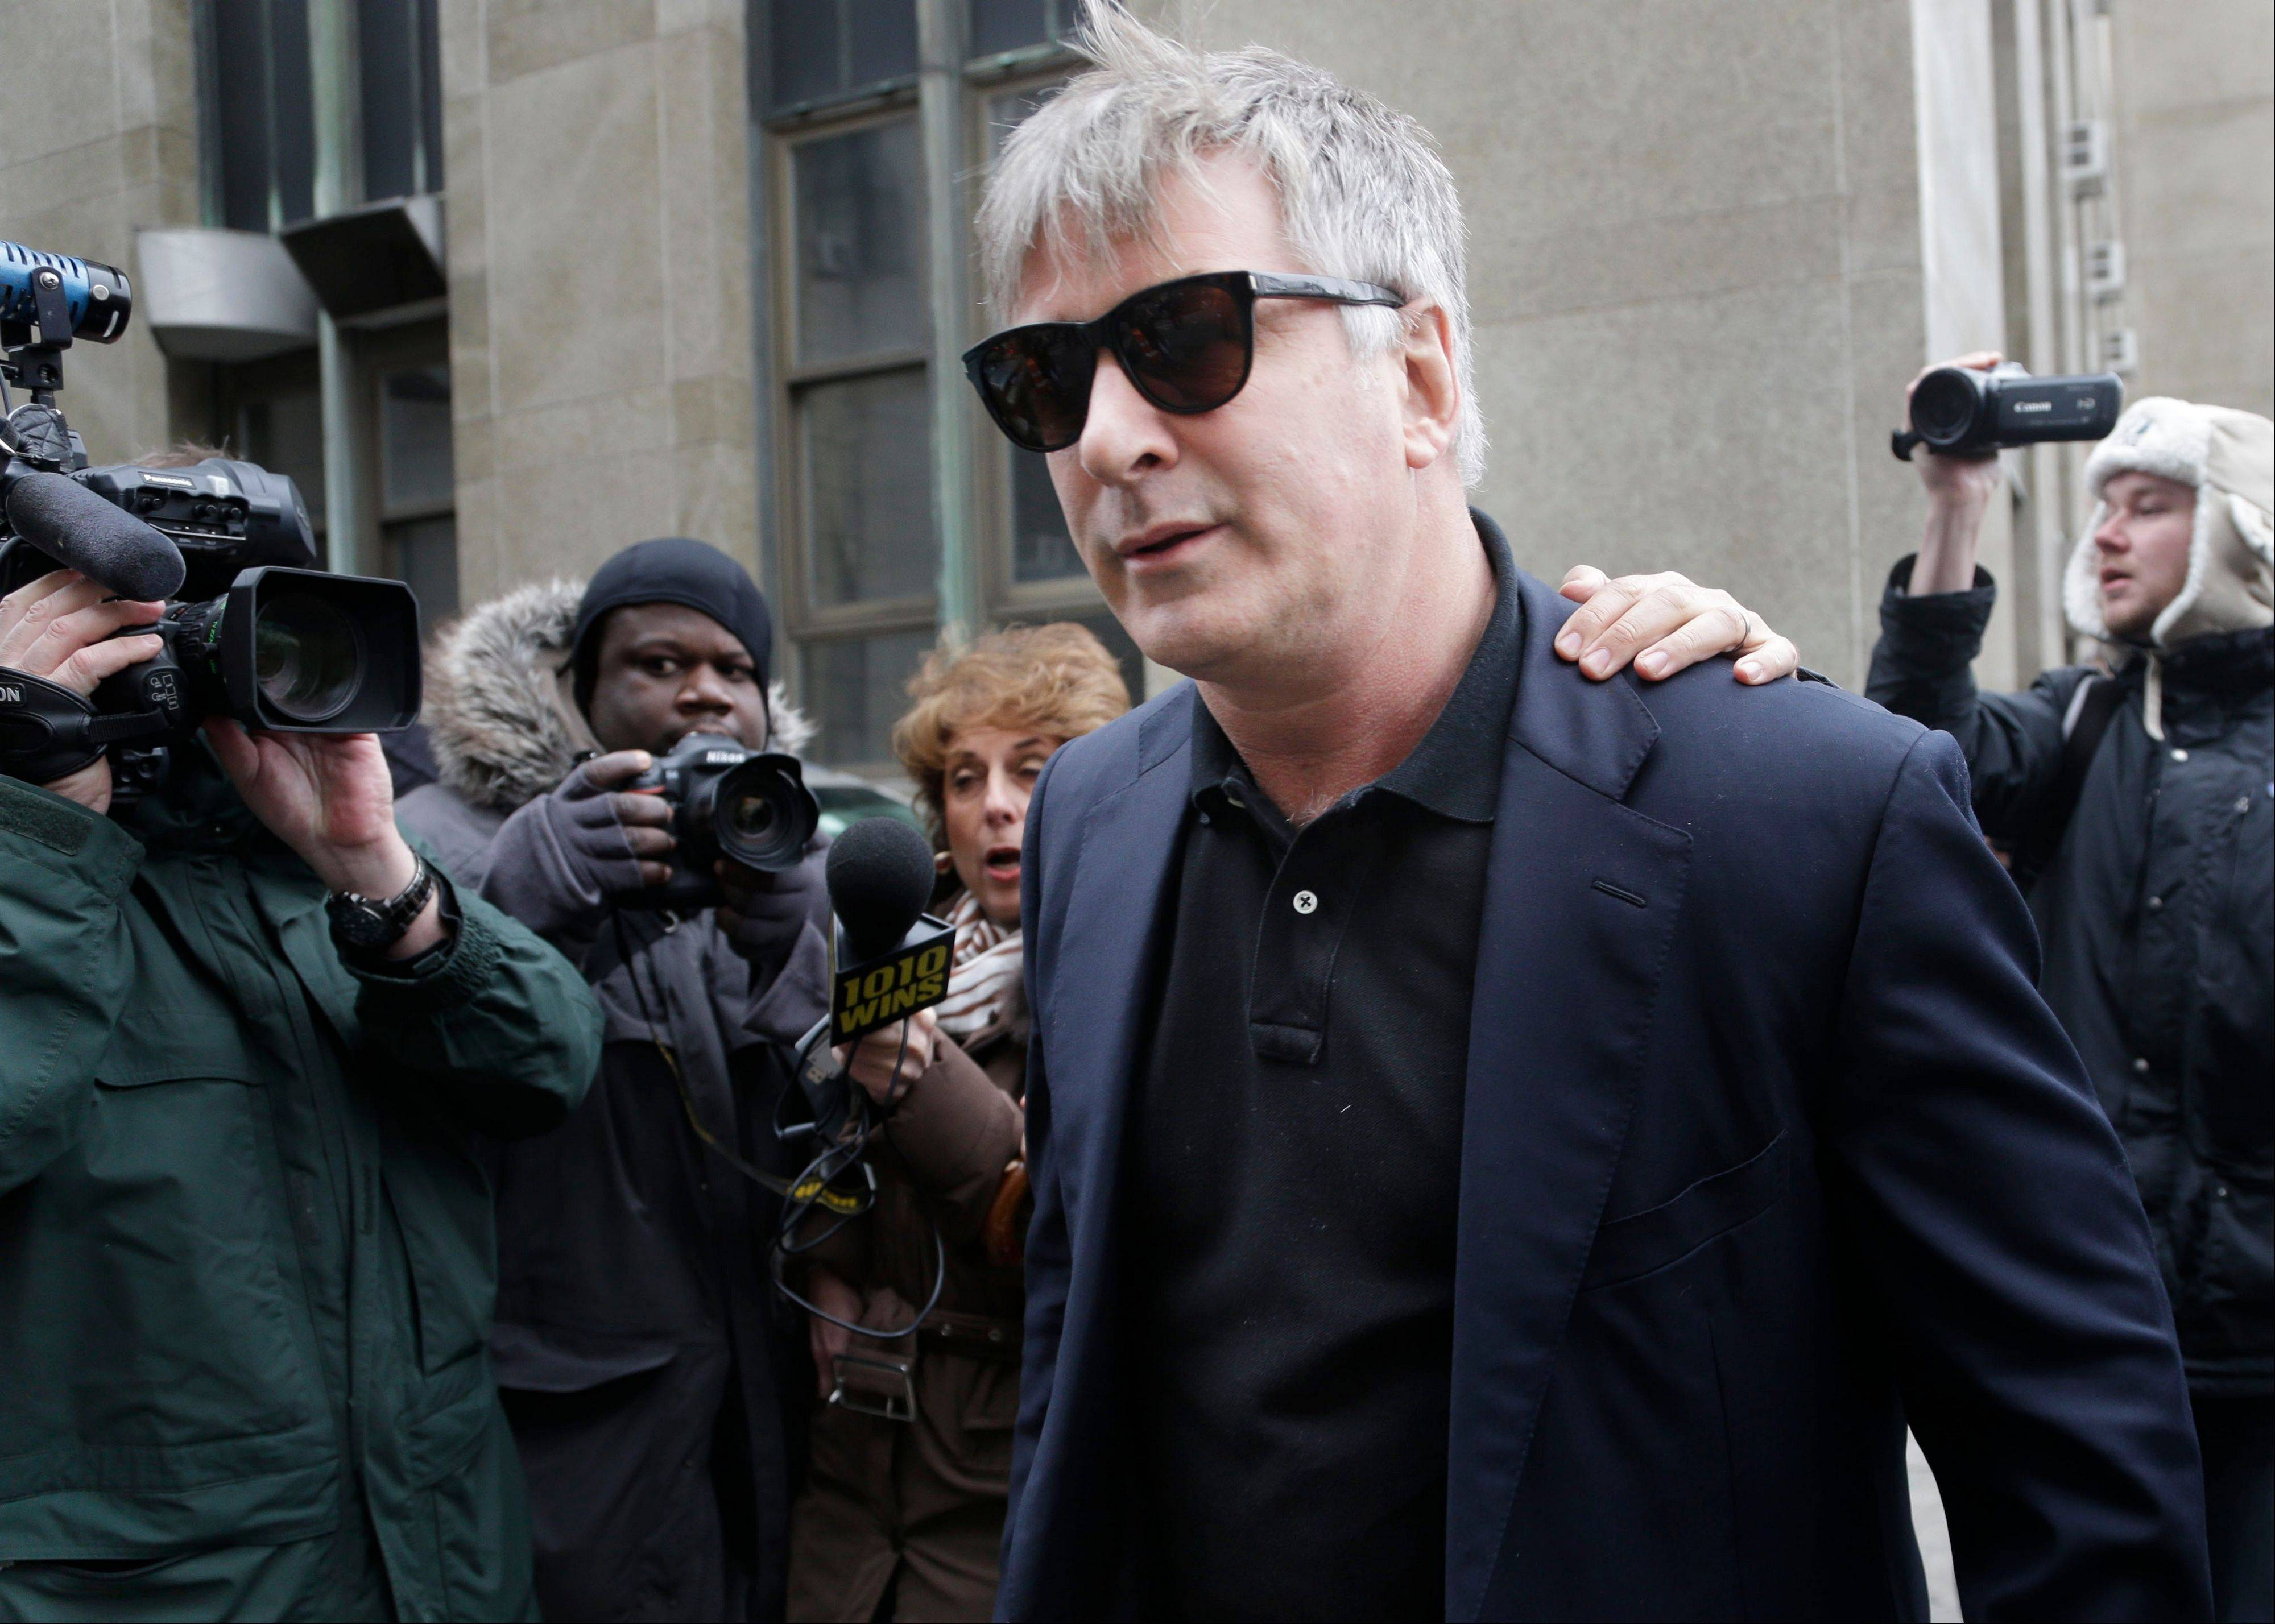 MSNBC and Alec Baldwin say they are ending the actor's talk show, which was suspended for two weeks after the actor used an anti-gay slur against a photographer in a New York City street.